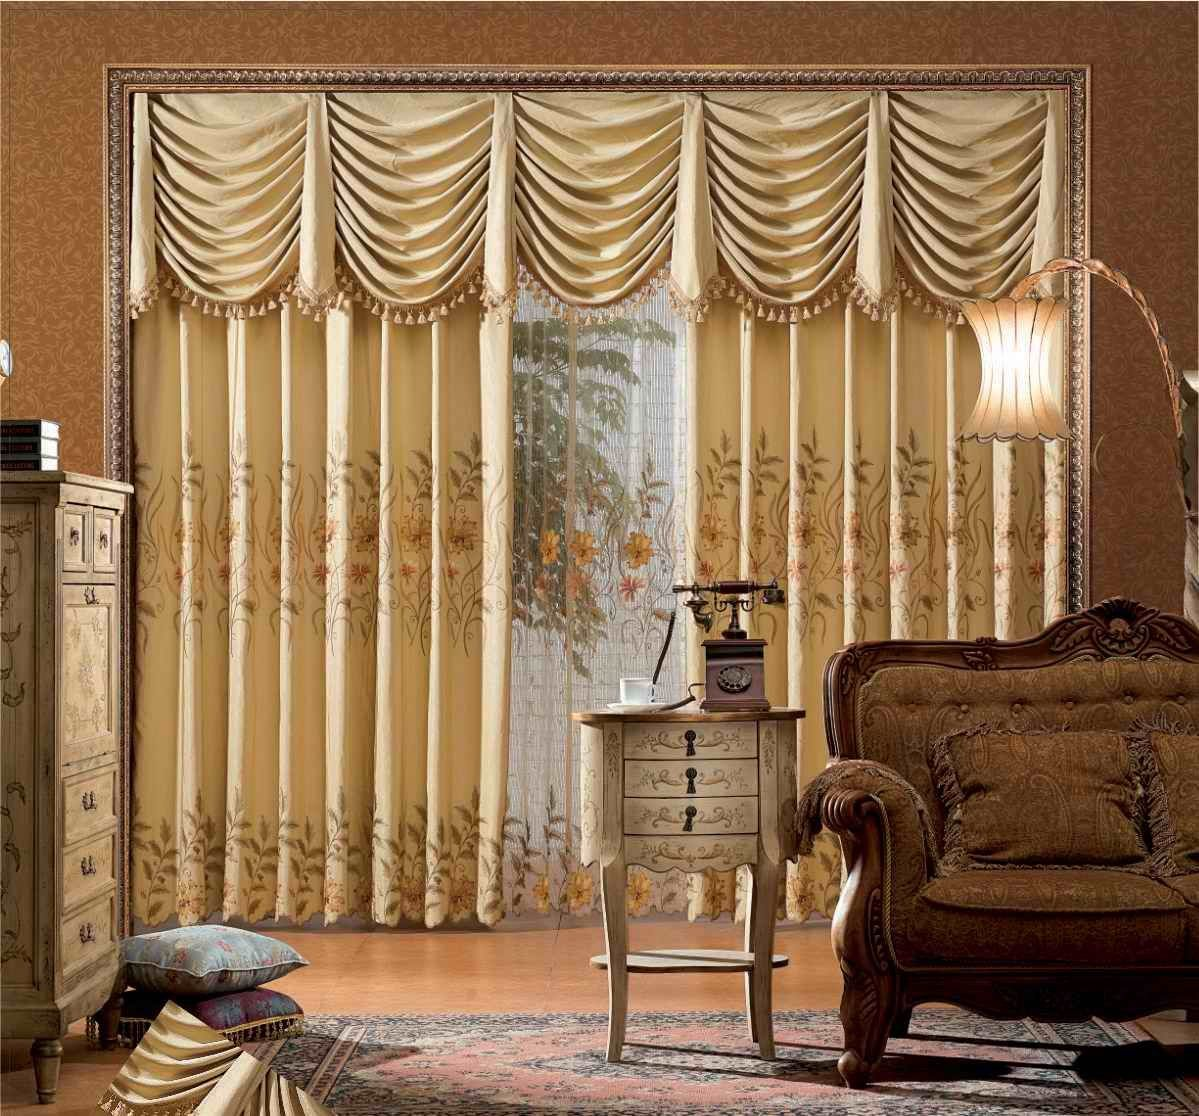 Living Room Curtains Designs Entrancing Make Modern Living Room Curtains  Httphighlifestylewp Inspiration